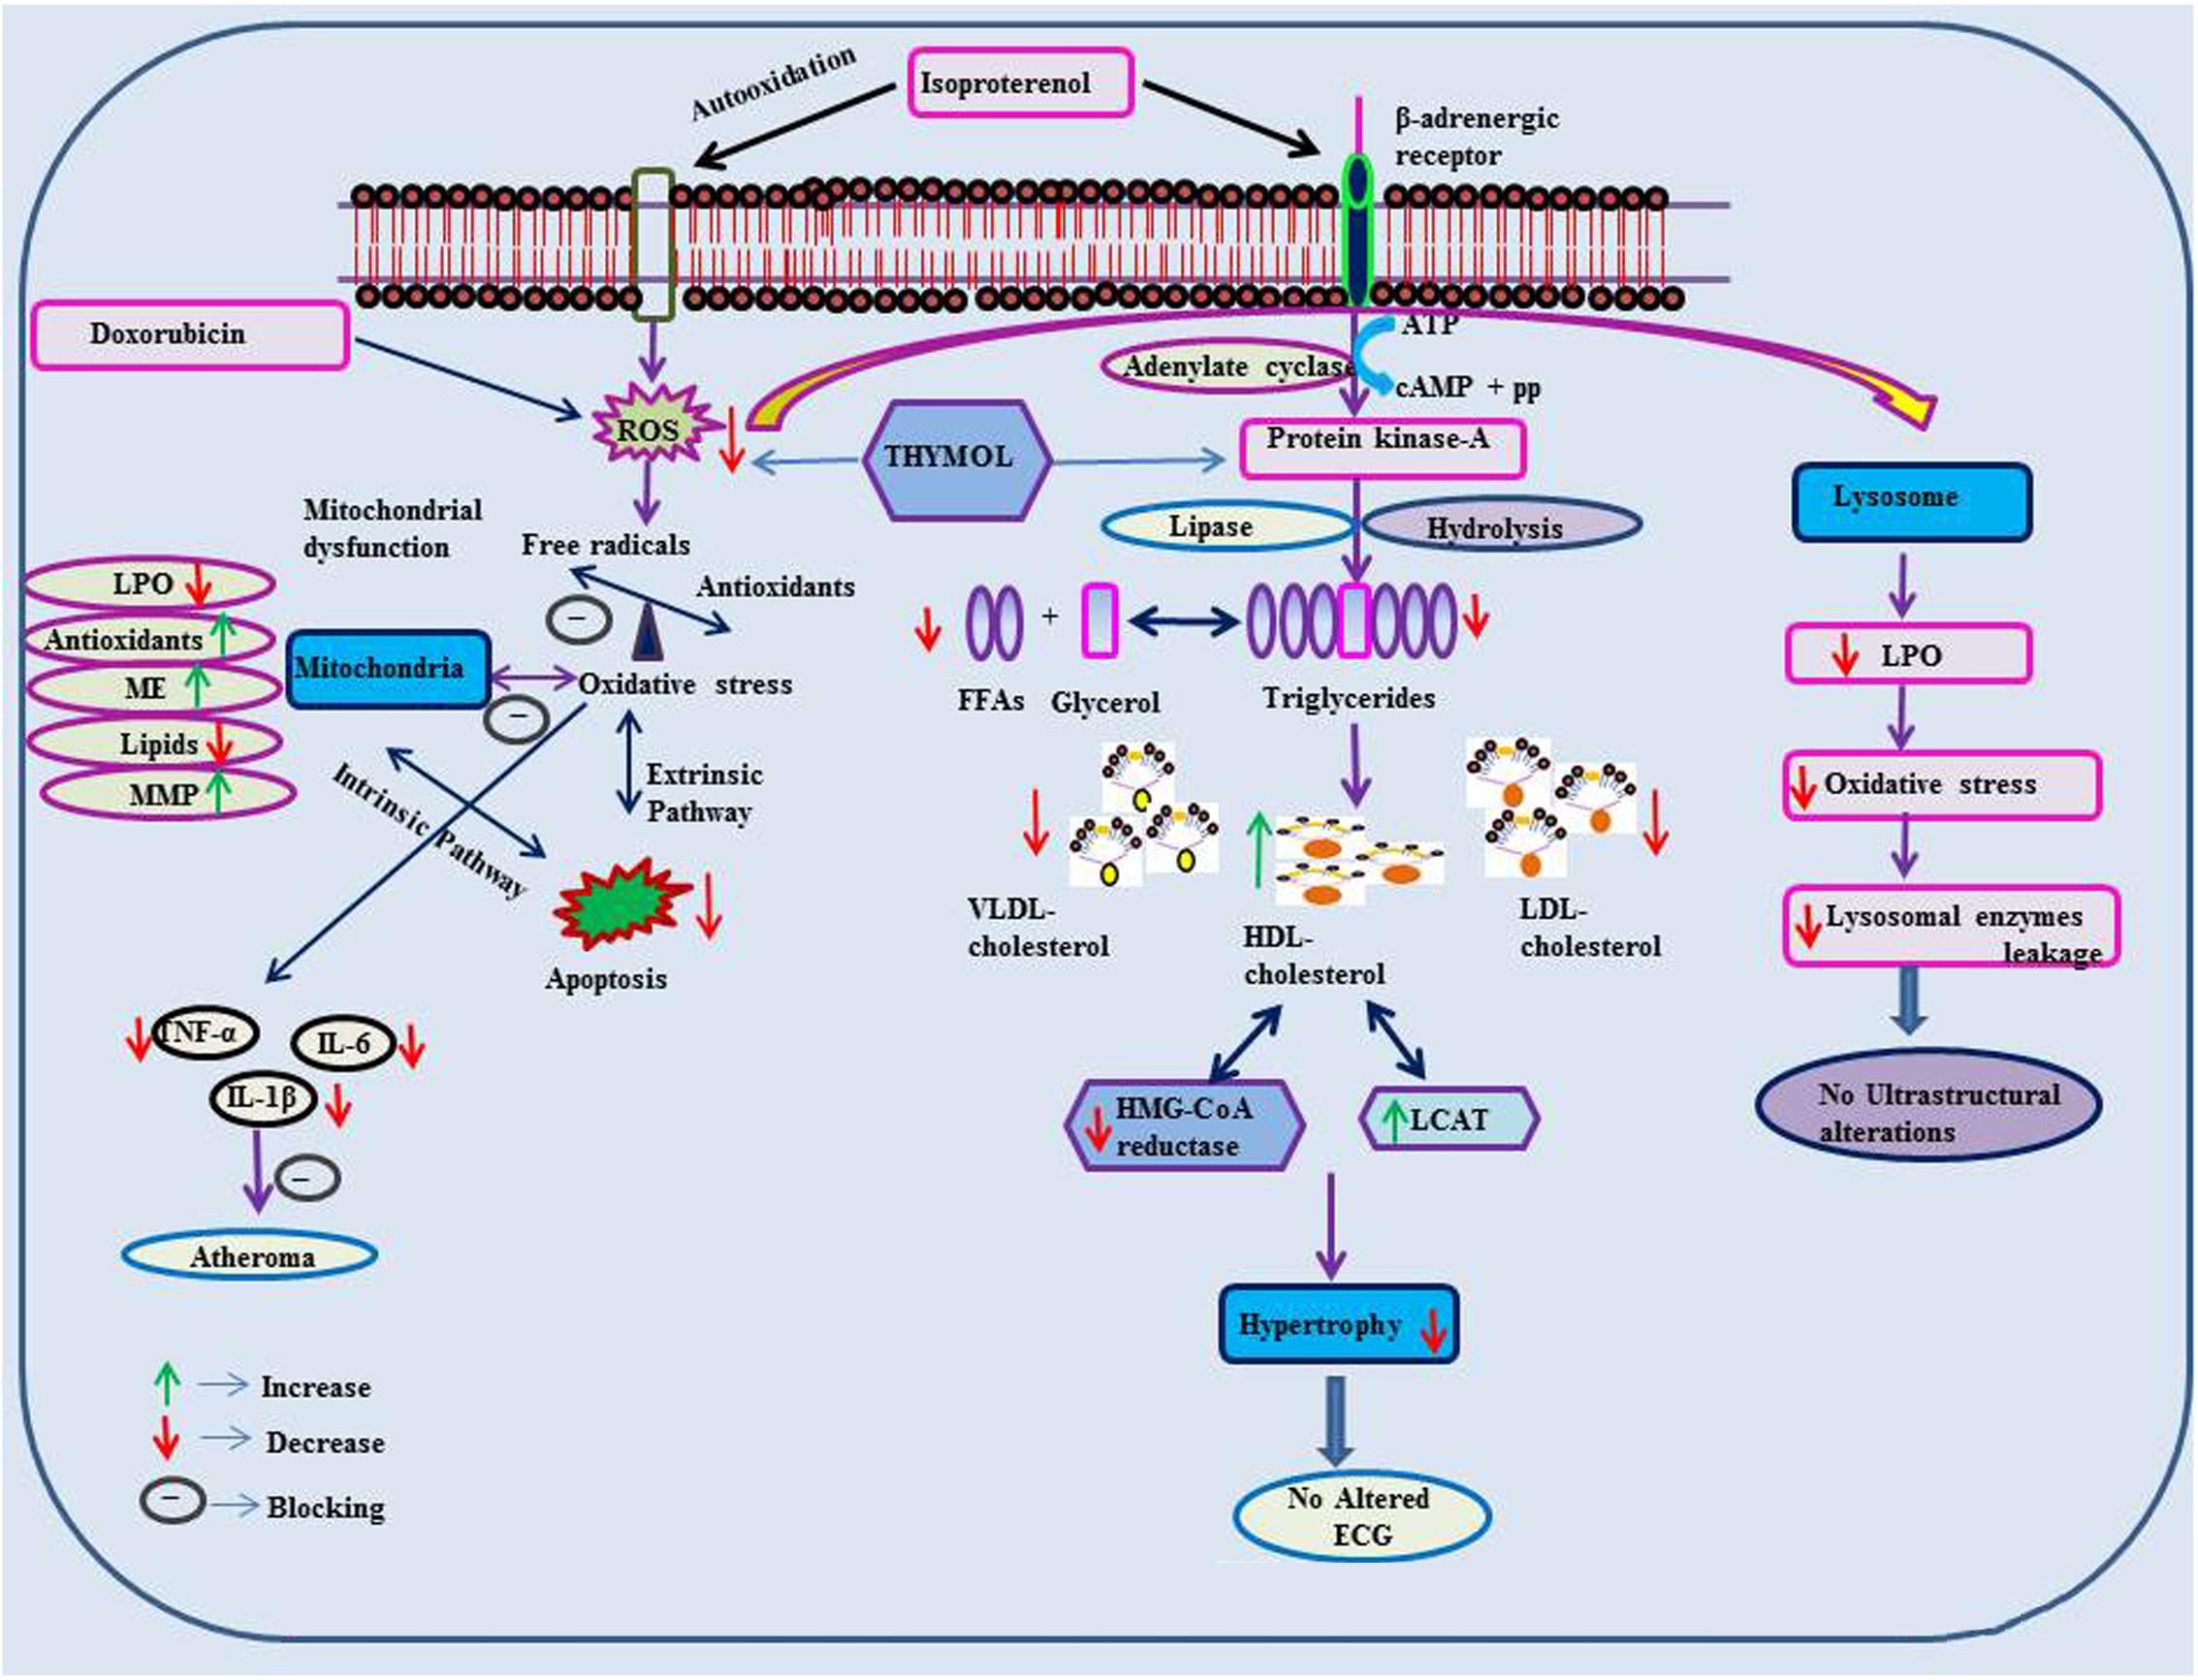 Frontiers | Pharmacological Properties and Molecular